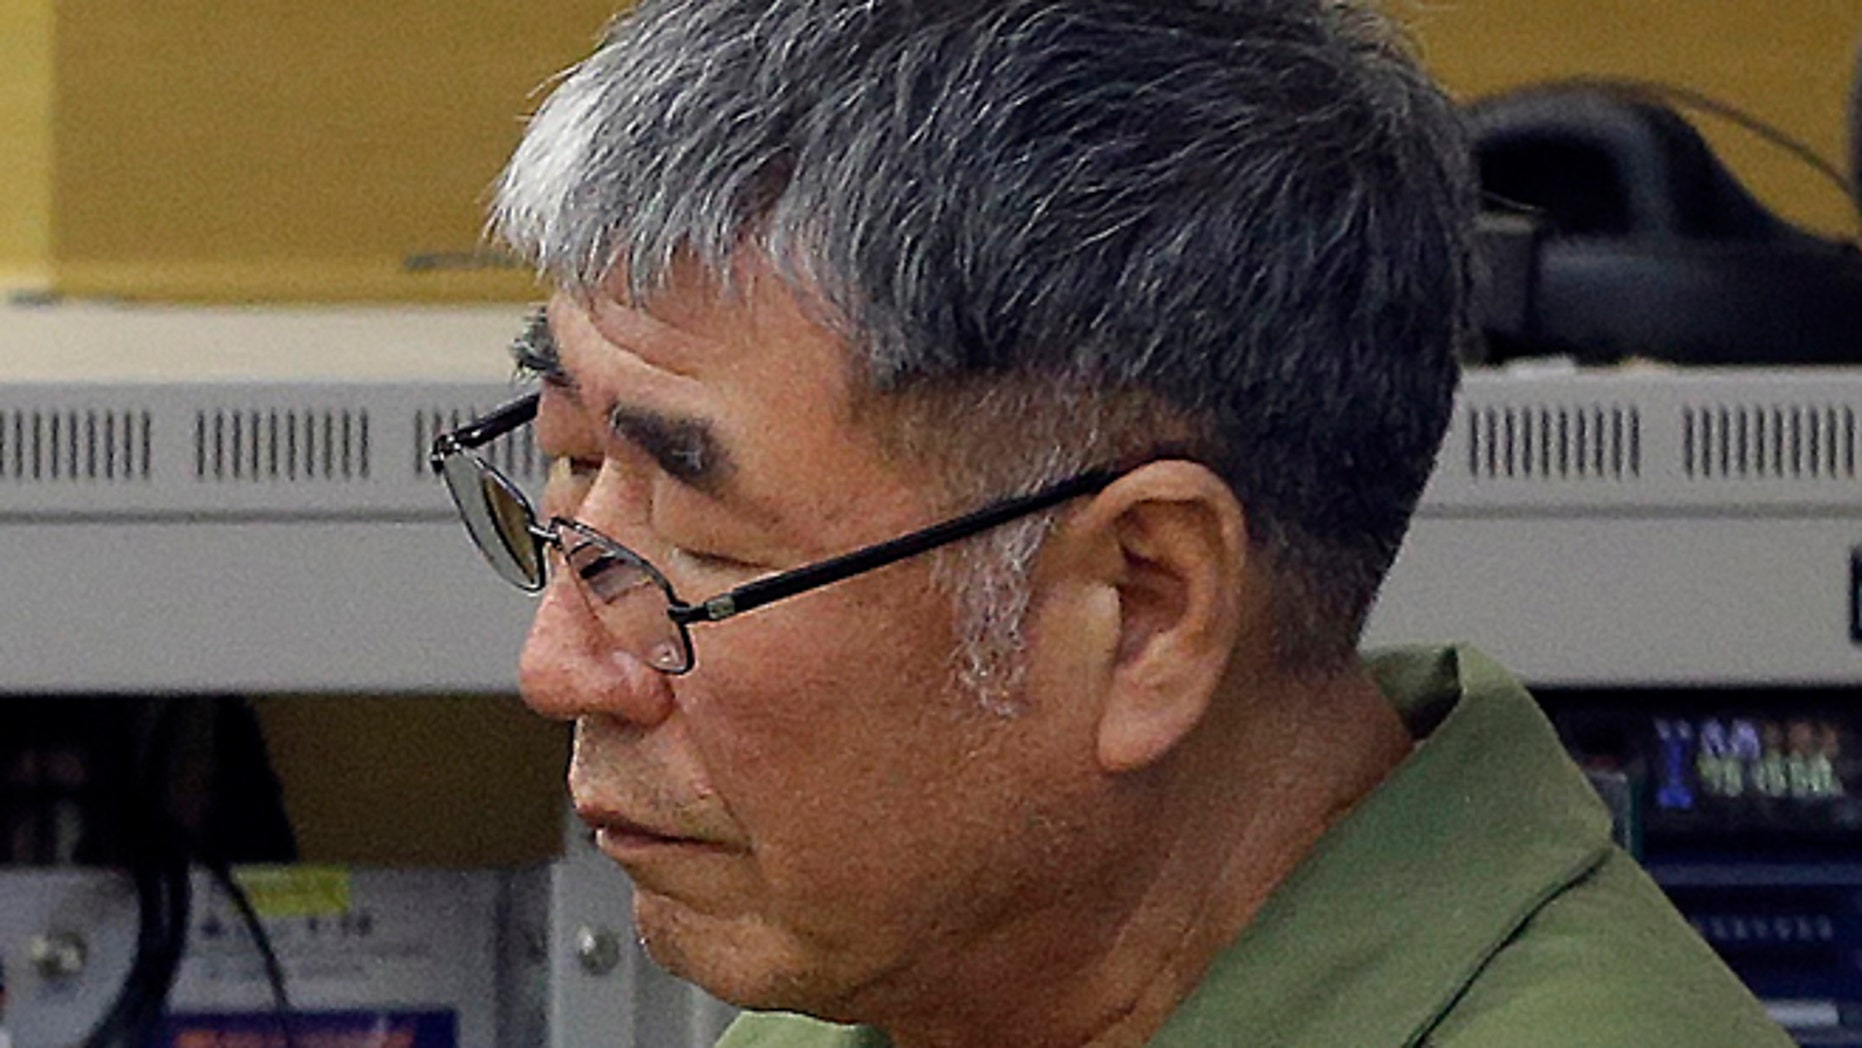 April 28, 2015: Lee Joon-seok, the captain of the sunken South Korean ferry Sewol, sits for verdicts at Gwangju High Court in Gwangju, South Korea.